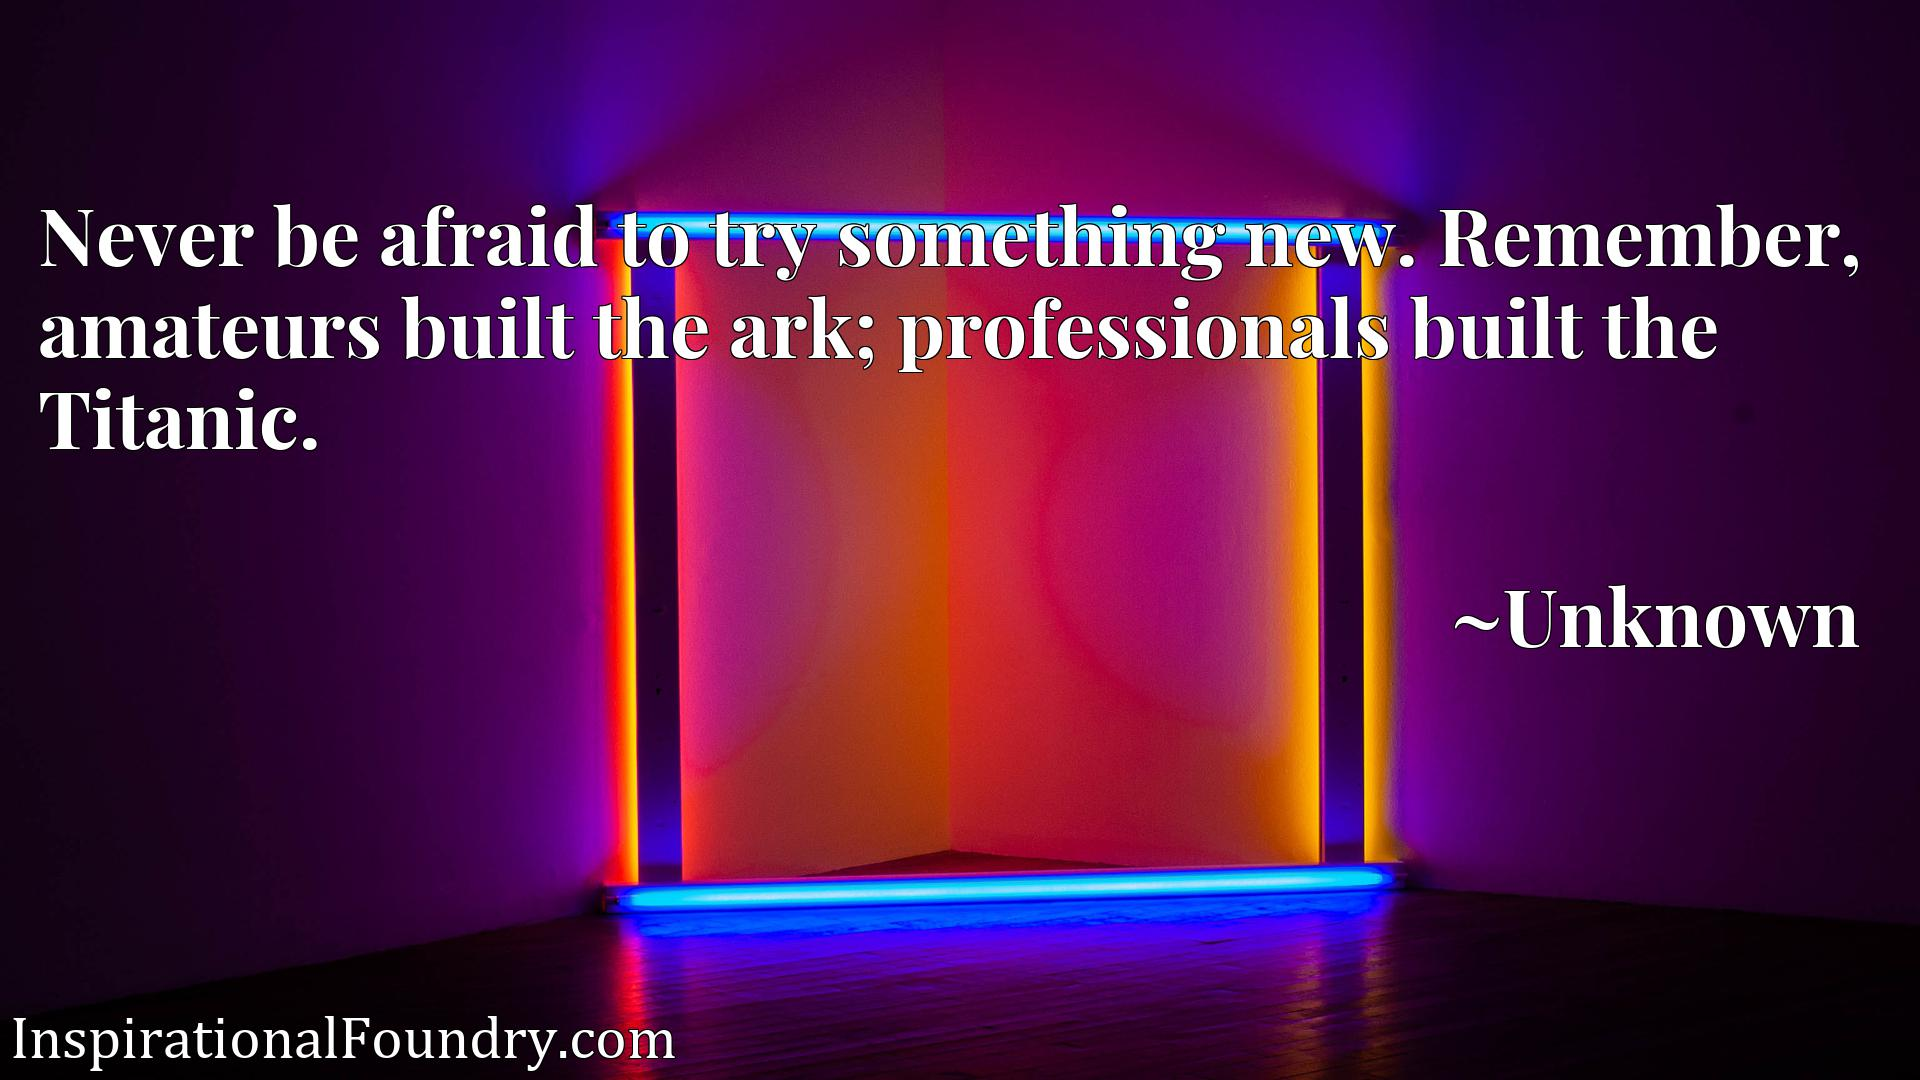 Never be afraid to try something new. Remember, amateurs built the ark; professionals built the Titanic.